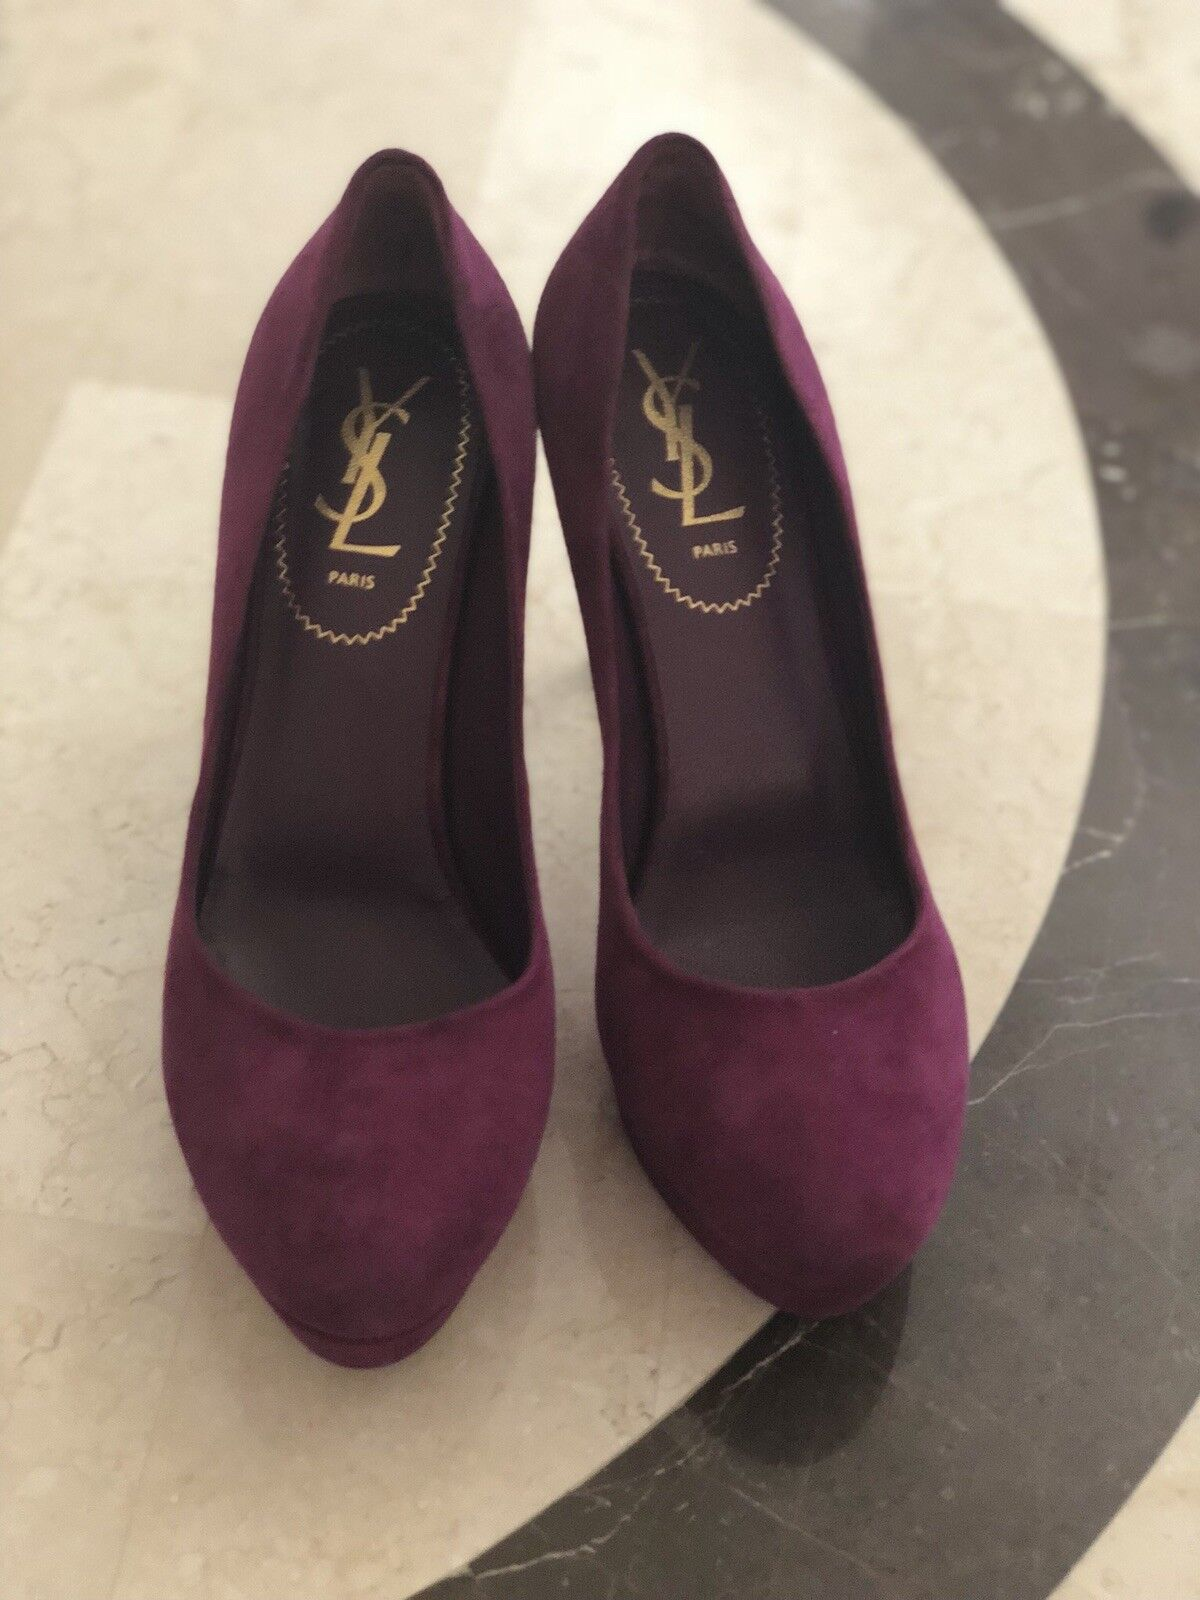 650. YSL Tribtoo purple suede pumps 38 fc15cf